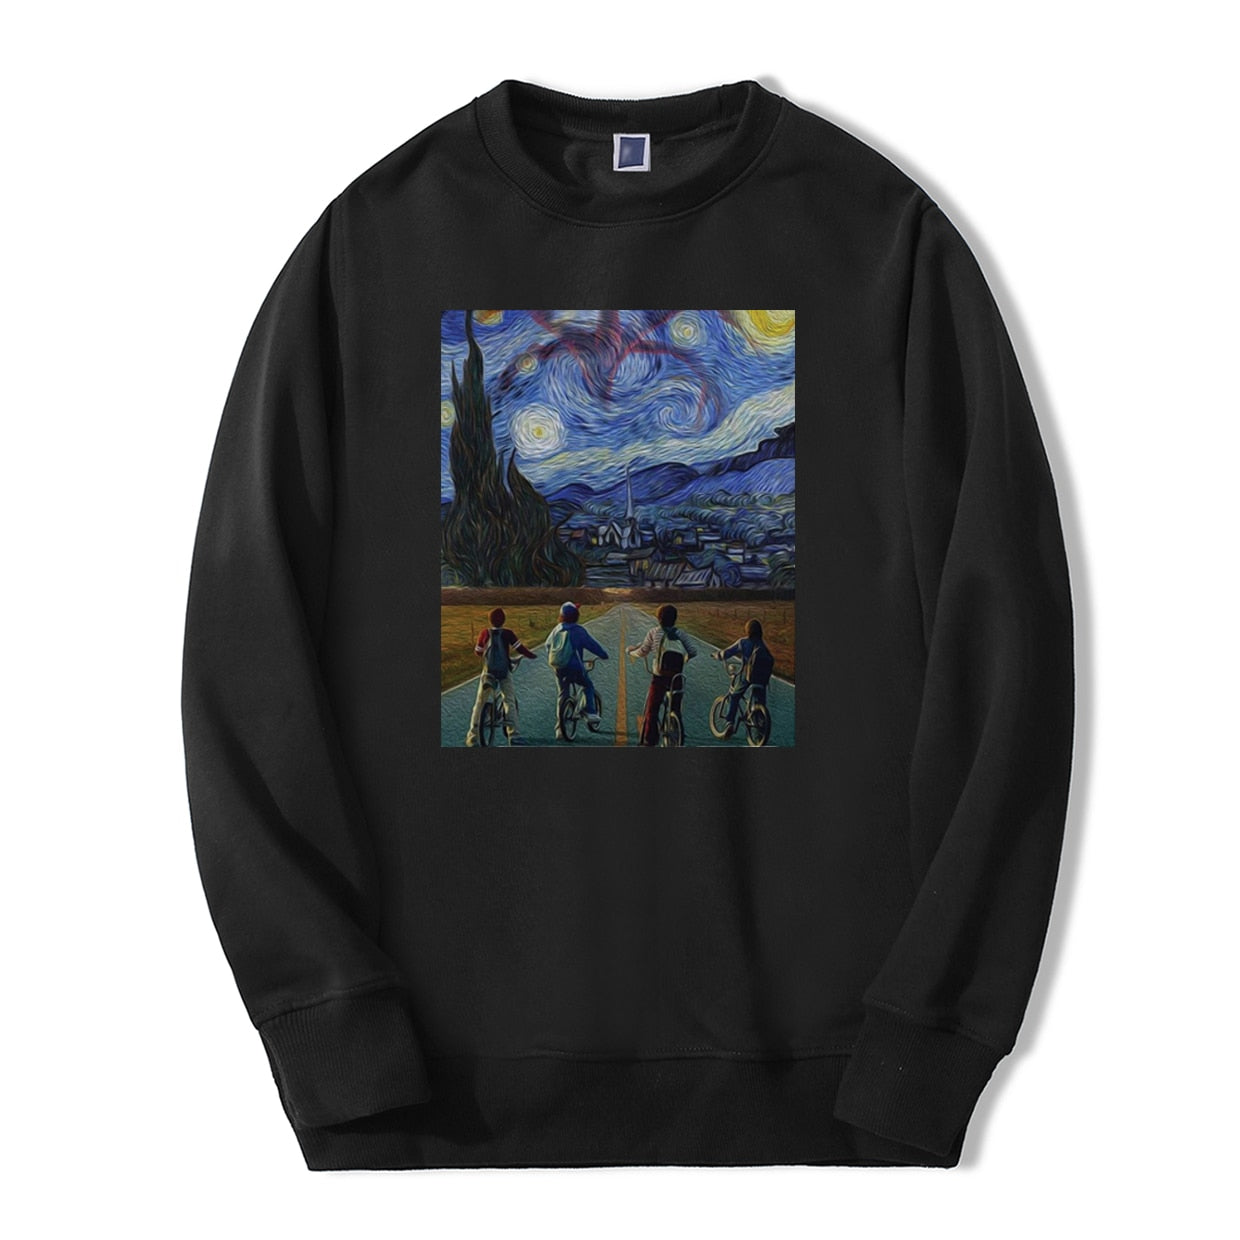 Stranger Things Sweatshirt Van Gogh Starry Night